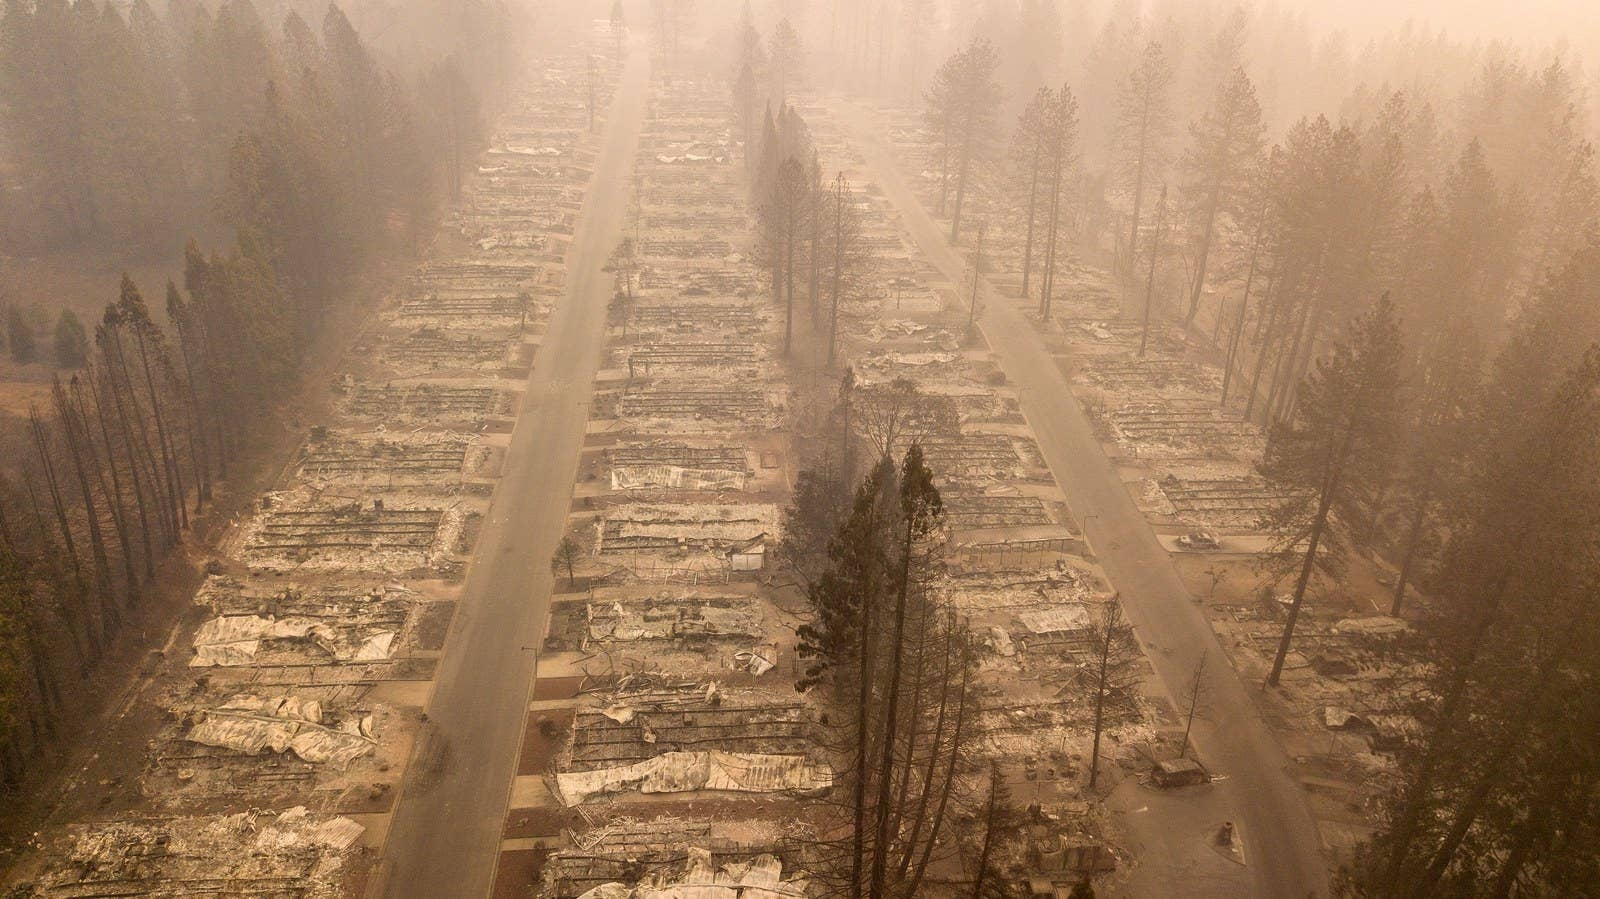 A burned neighborhood in Paradise, California, as a result of the Camp fire, Nov. 15.